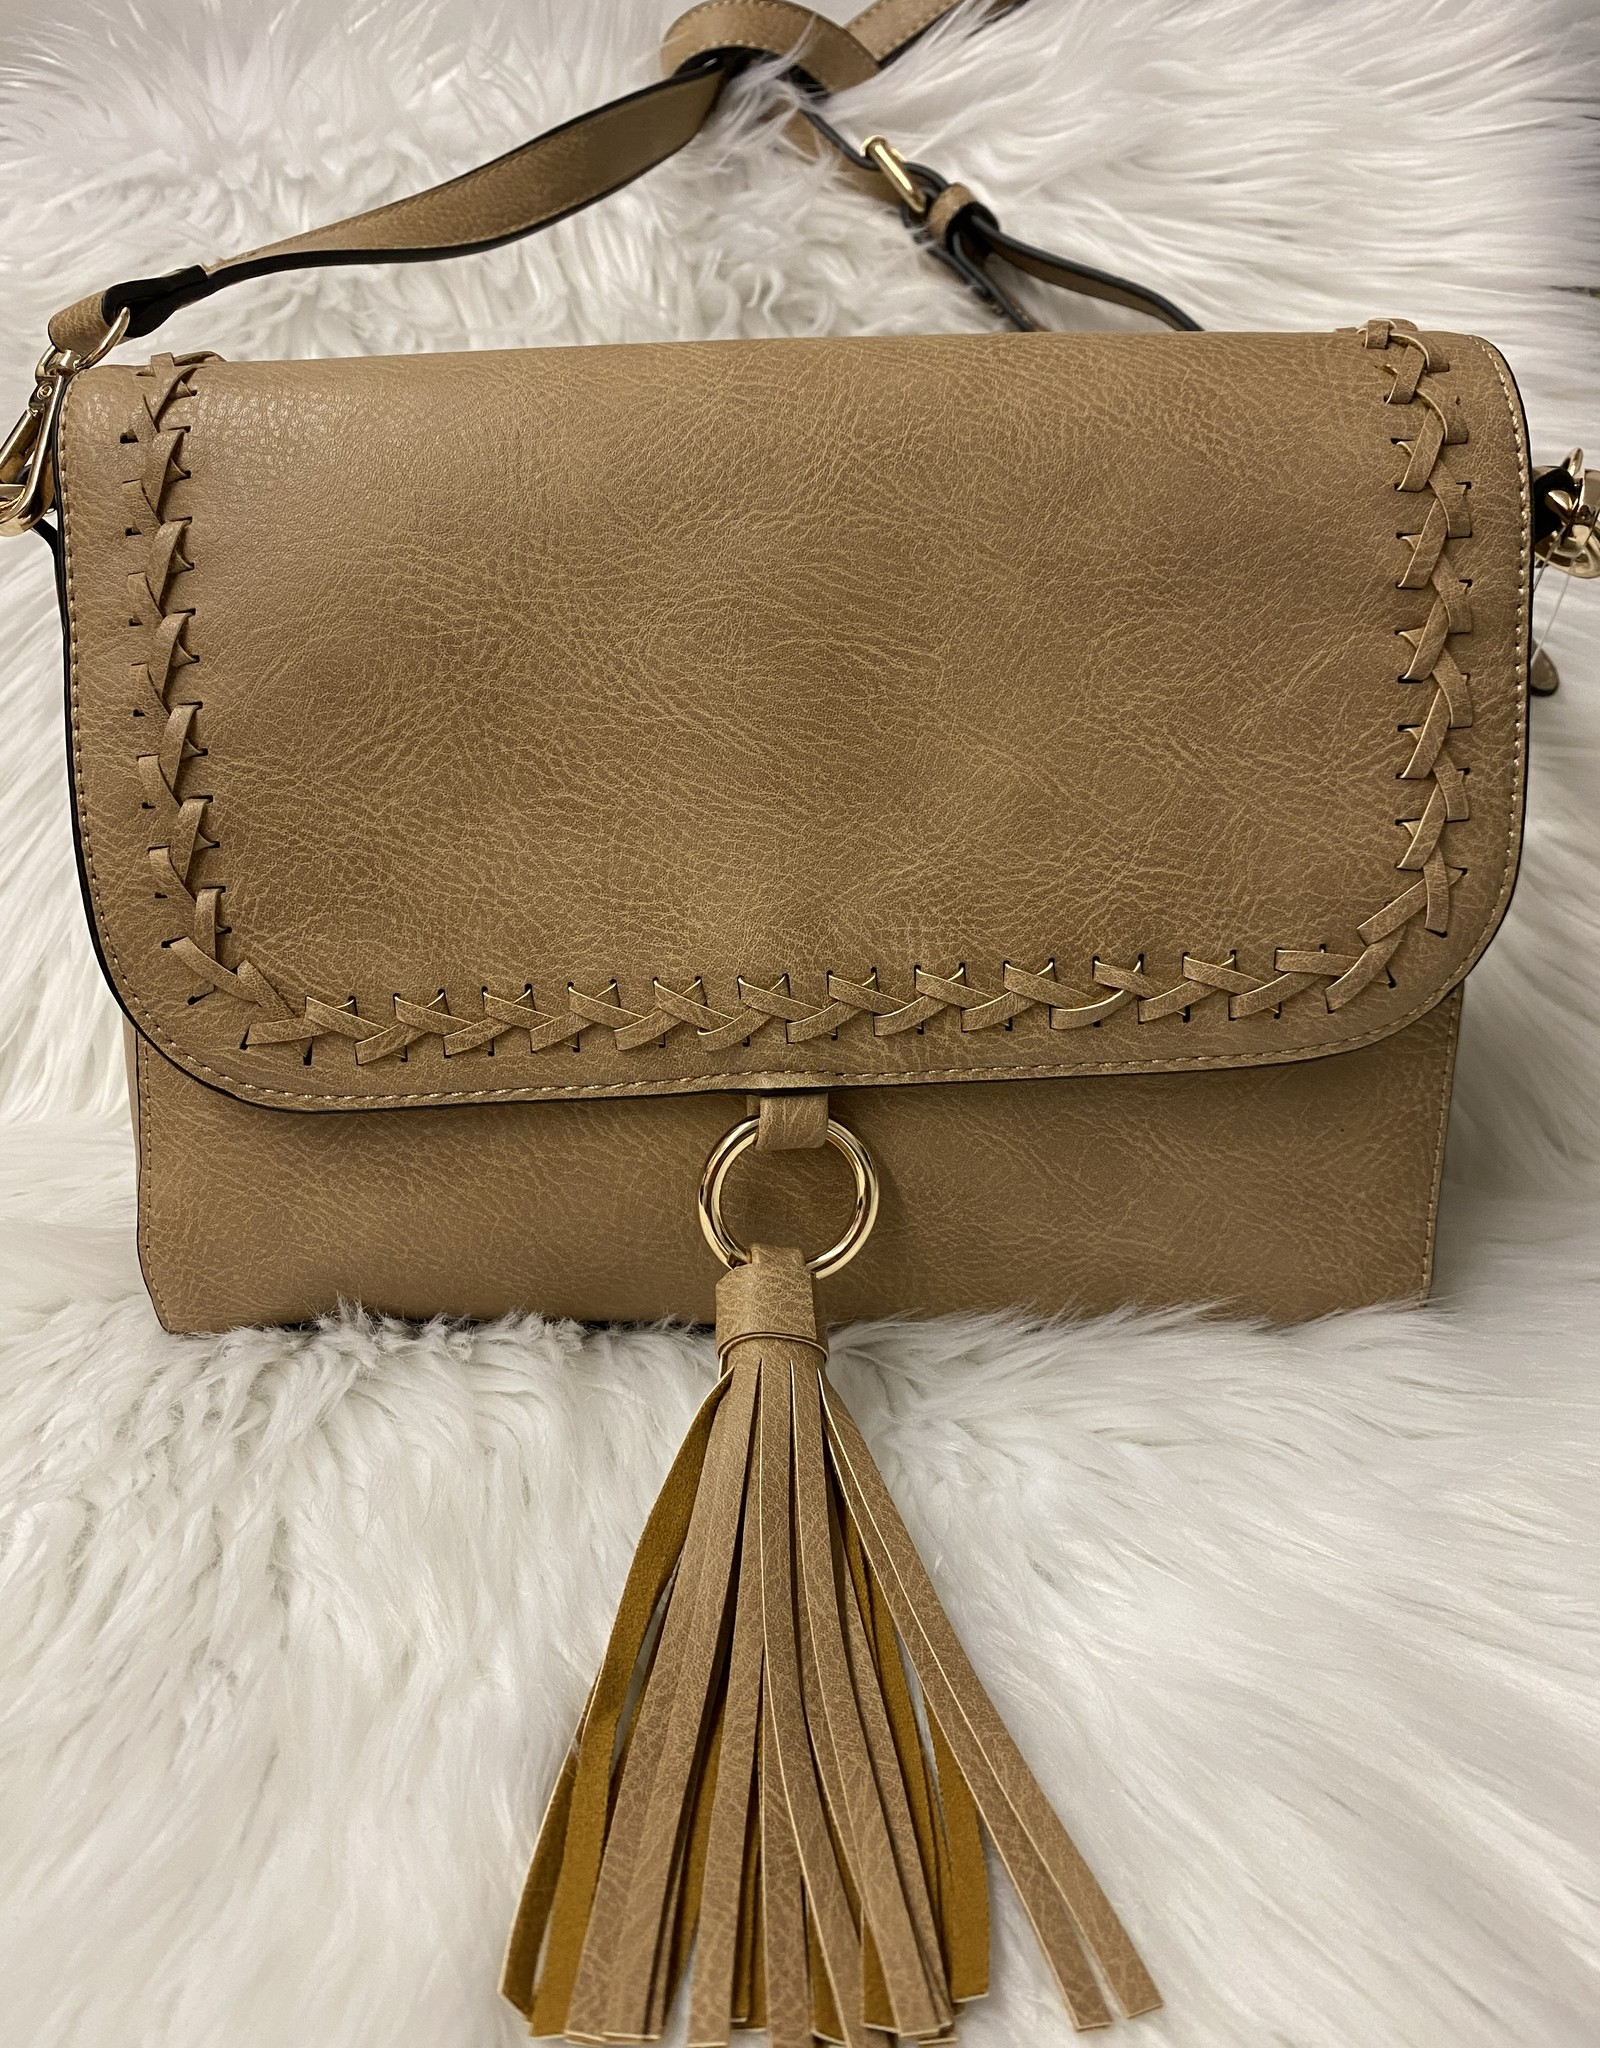 Buford Wholesale Whipstitch Flapover Crossbody